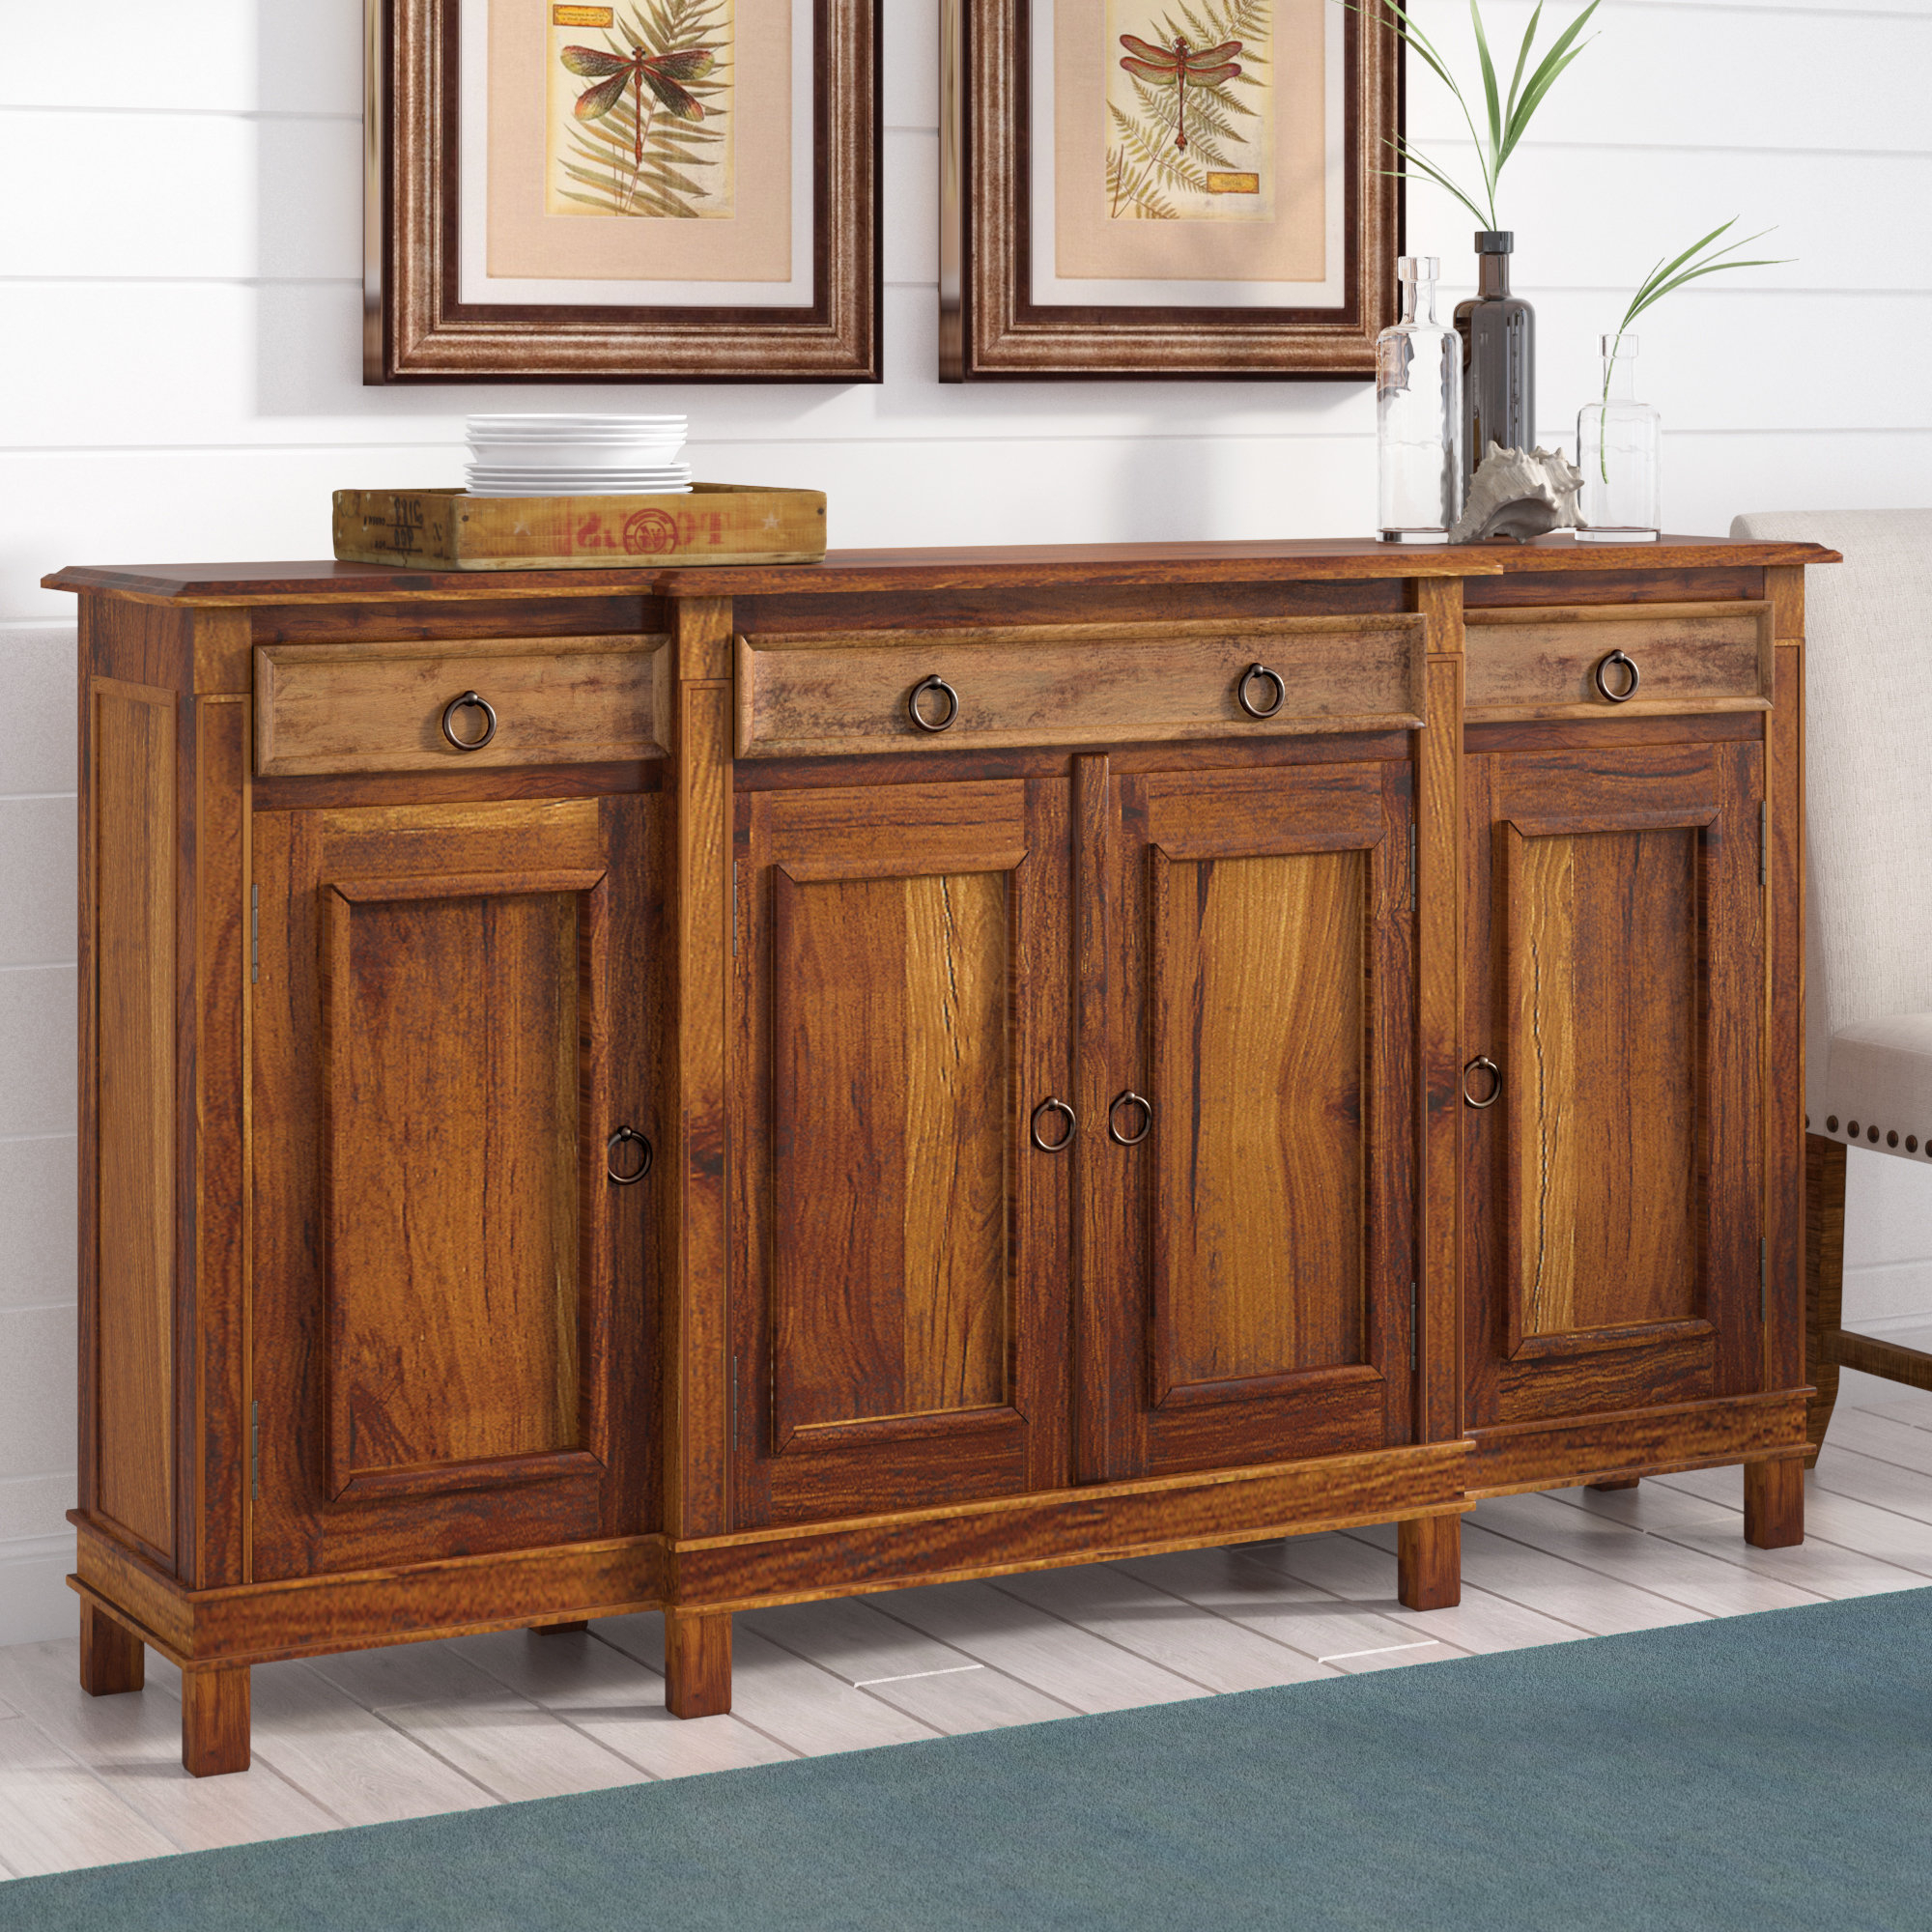 Sayles Sideboards Intended For Most Popular Beachcrest Home Minneola Cottage Wood Buffet Table & Reviews (Gallery 11 of 20)